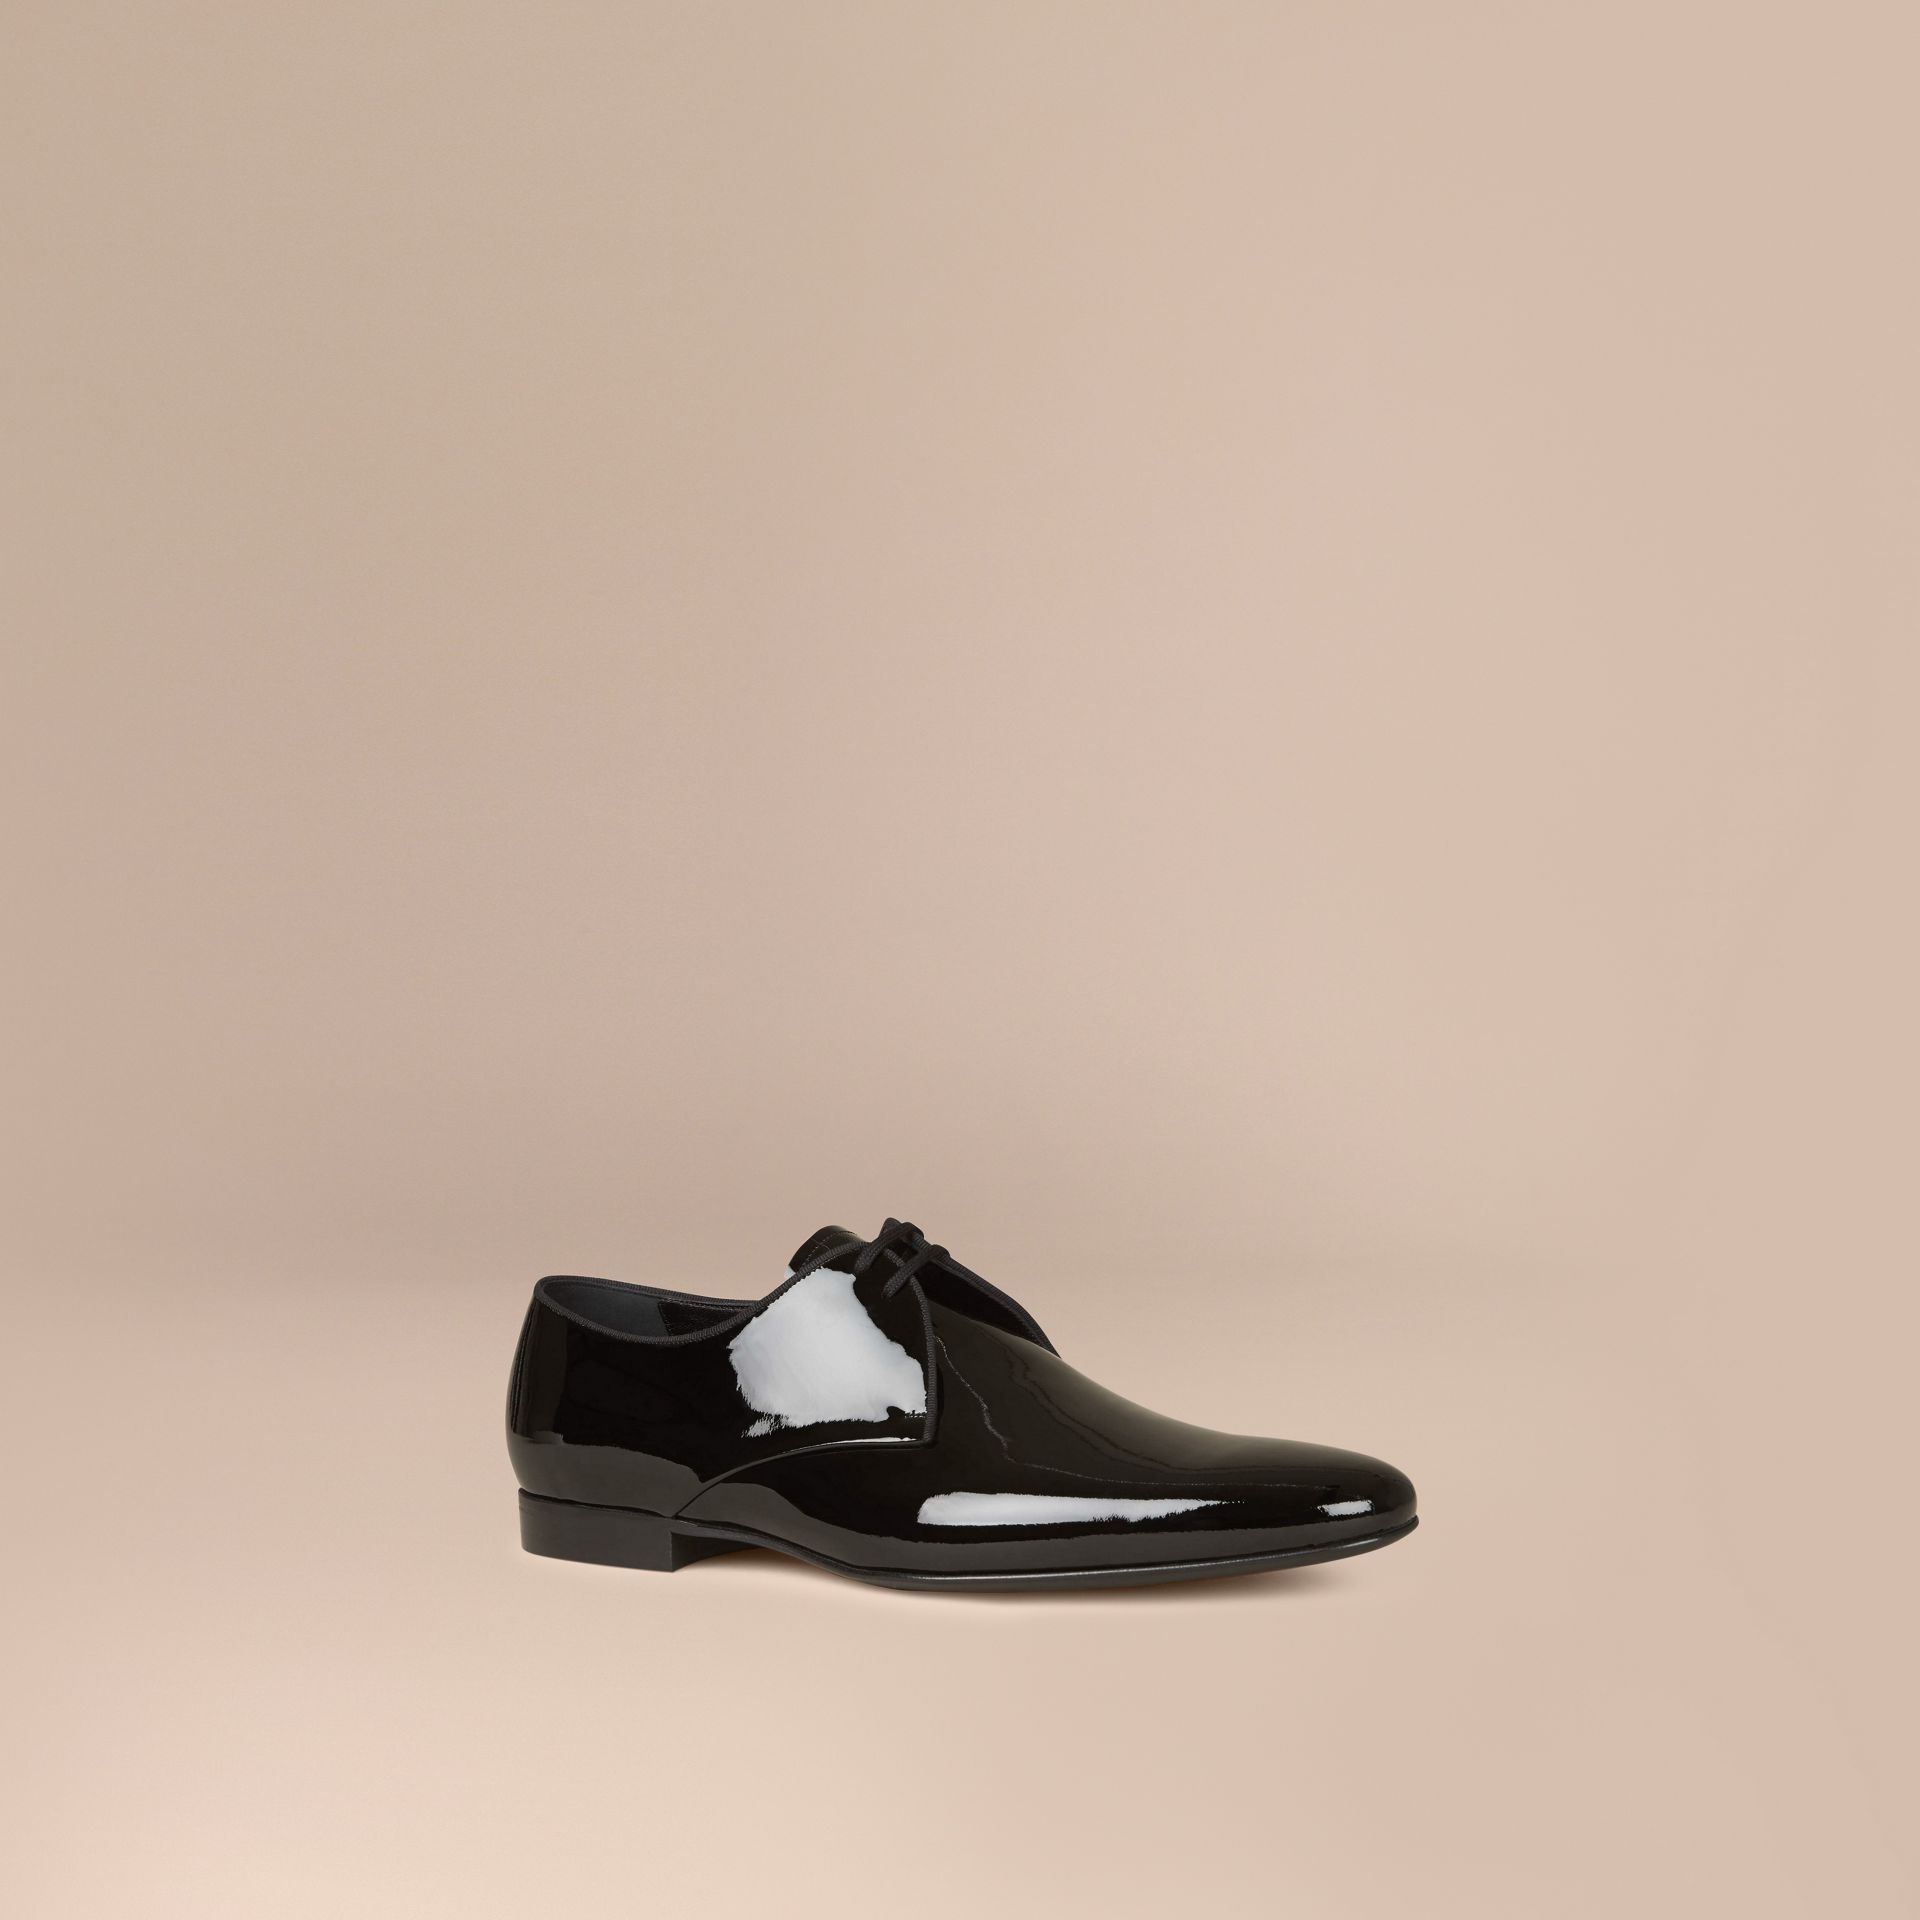 Polished Leather Lace-up Shoes in Black - Men | Burberry - gallery image 1